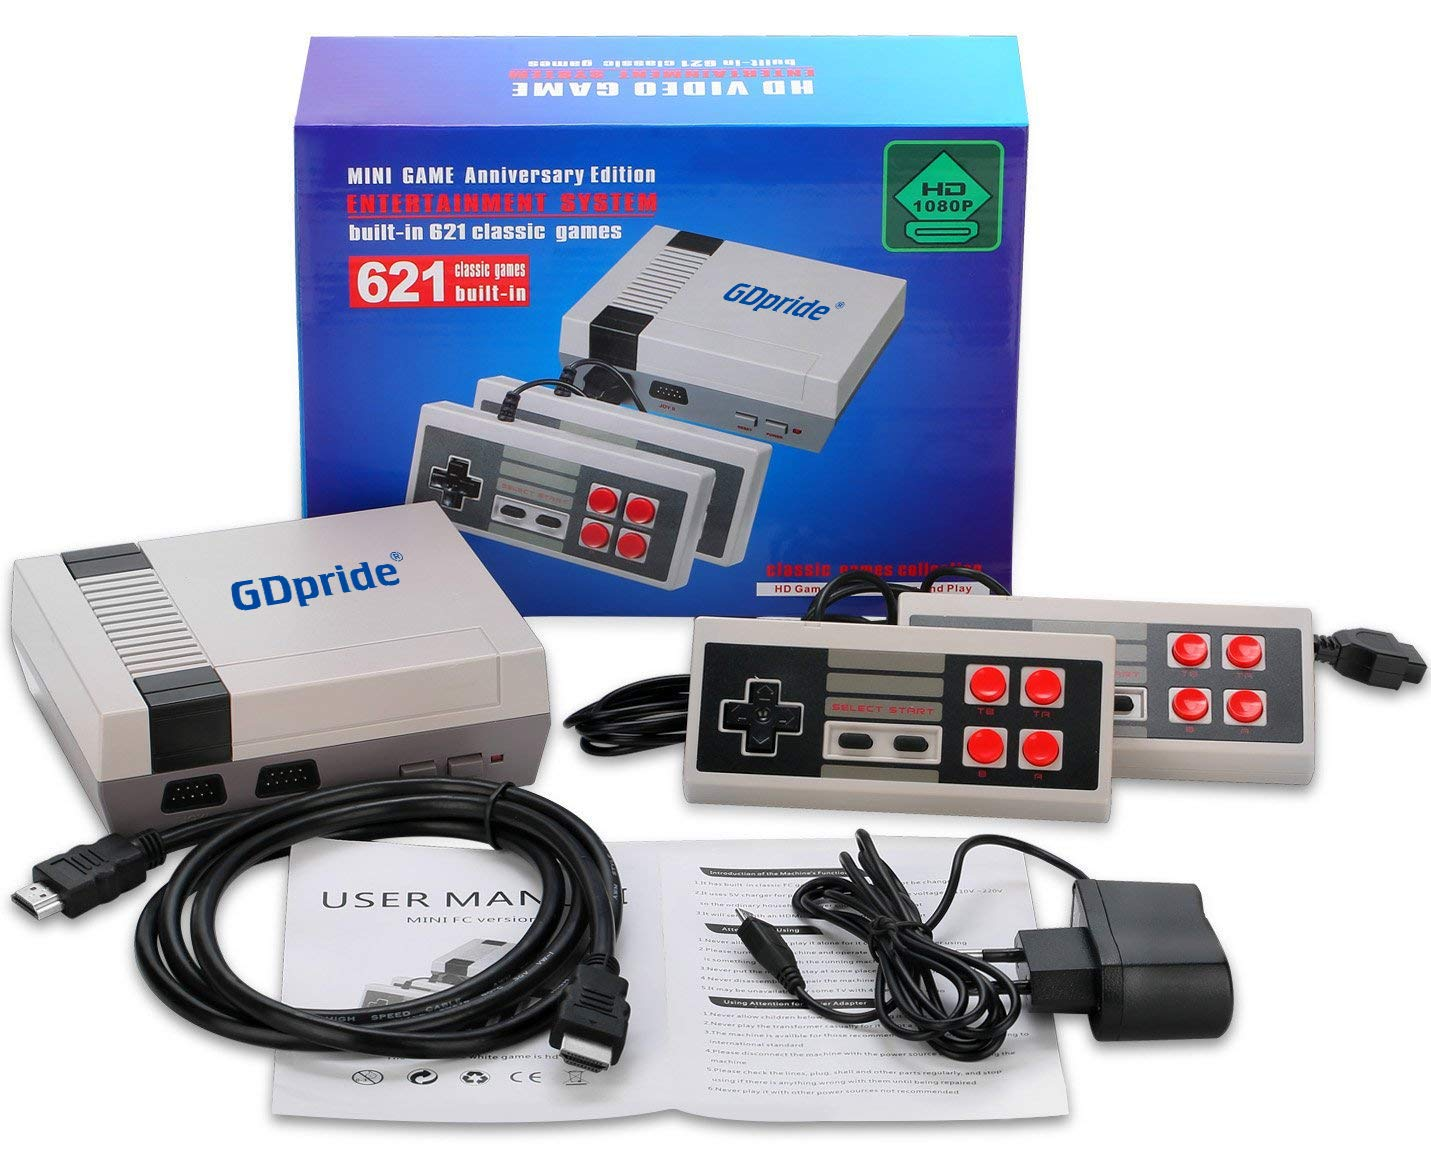 Classic Retro Game Consoles HD Edition - Professional System with 2 Controllers Built-in 621 Video Games, Professional System for NES Game Player GDpride